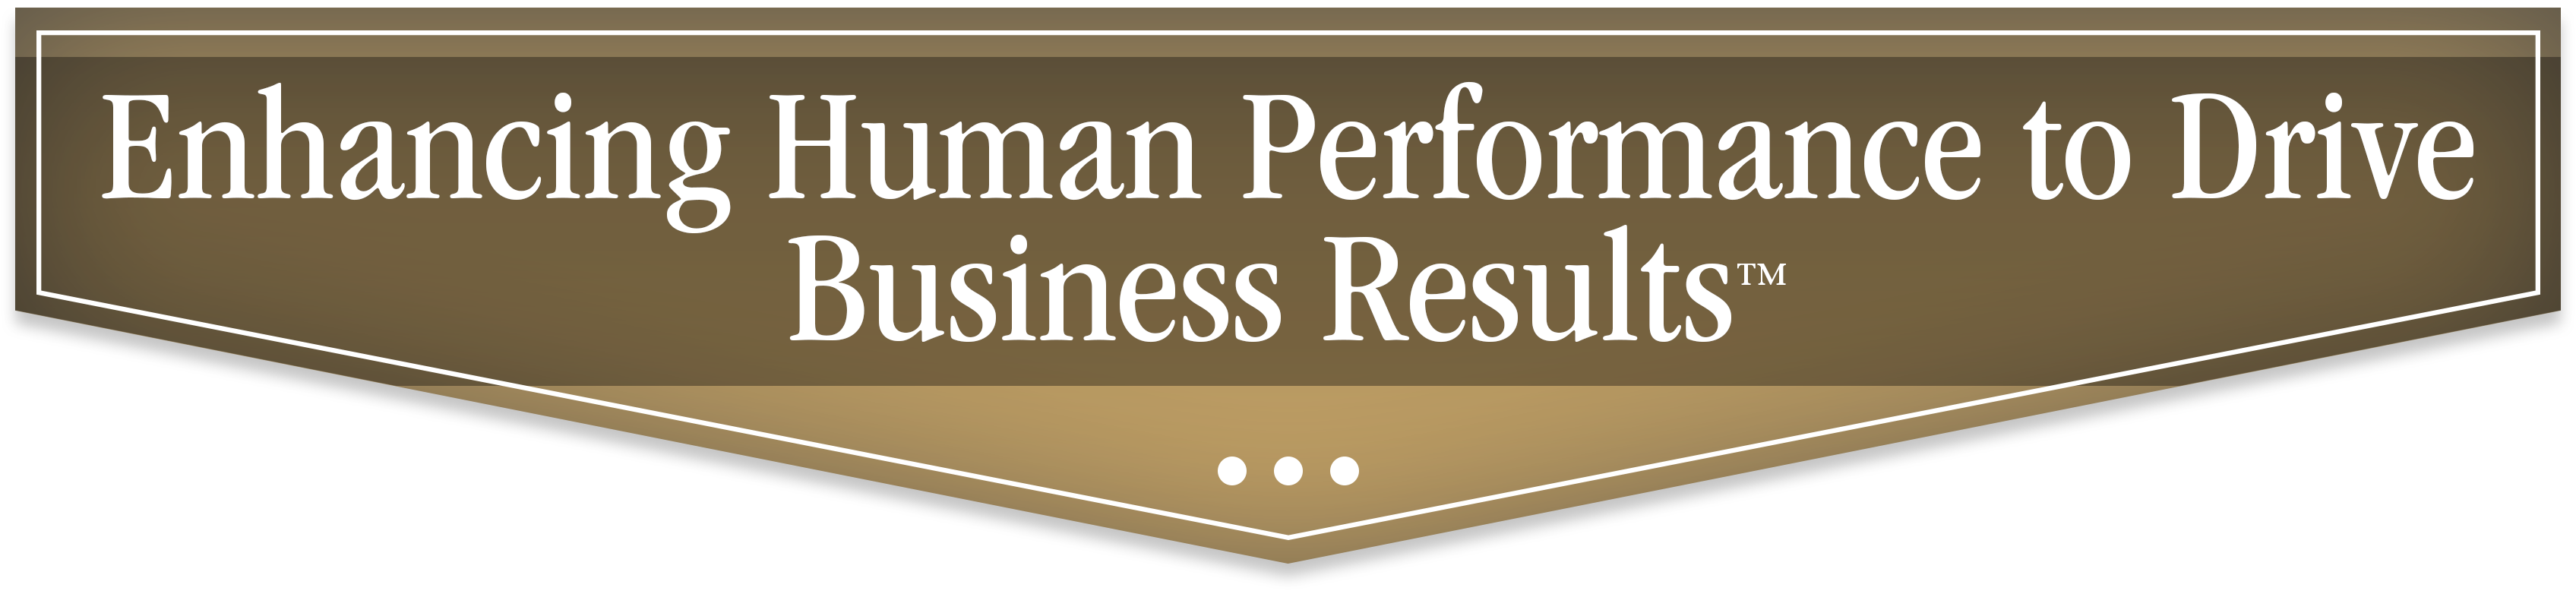 Enhancing Human Performance to Drive Business Results